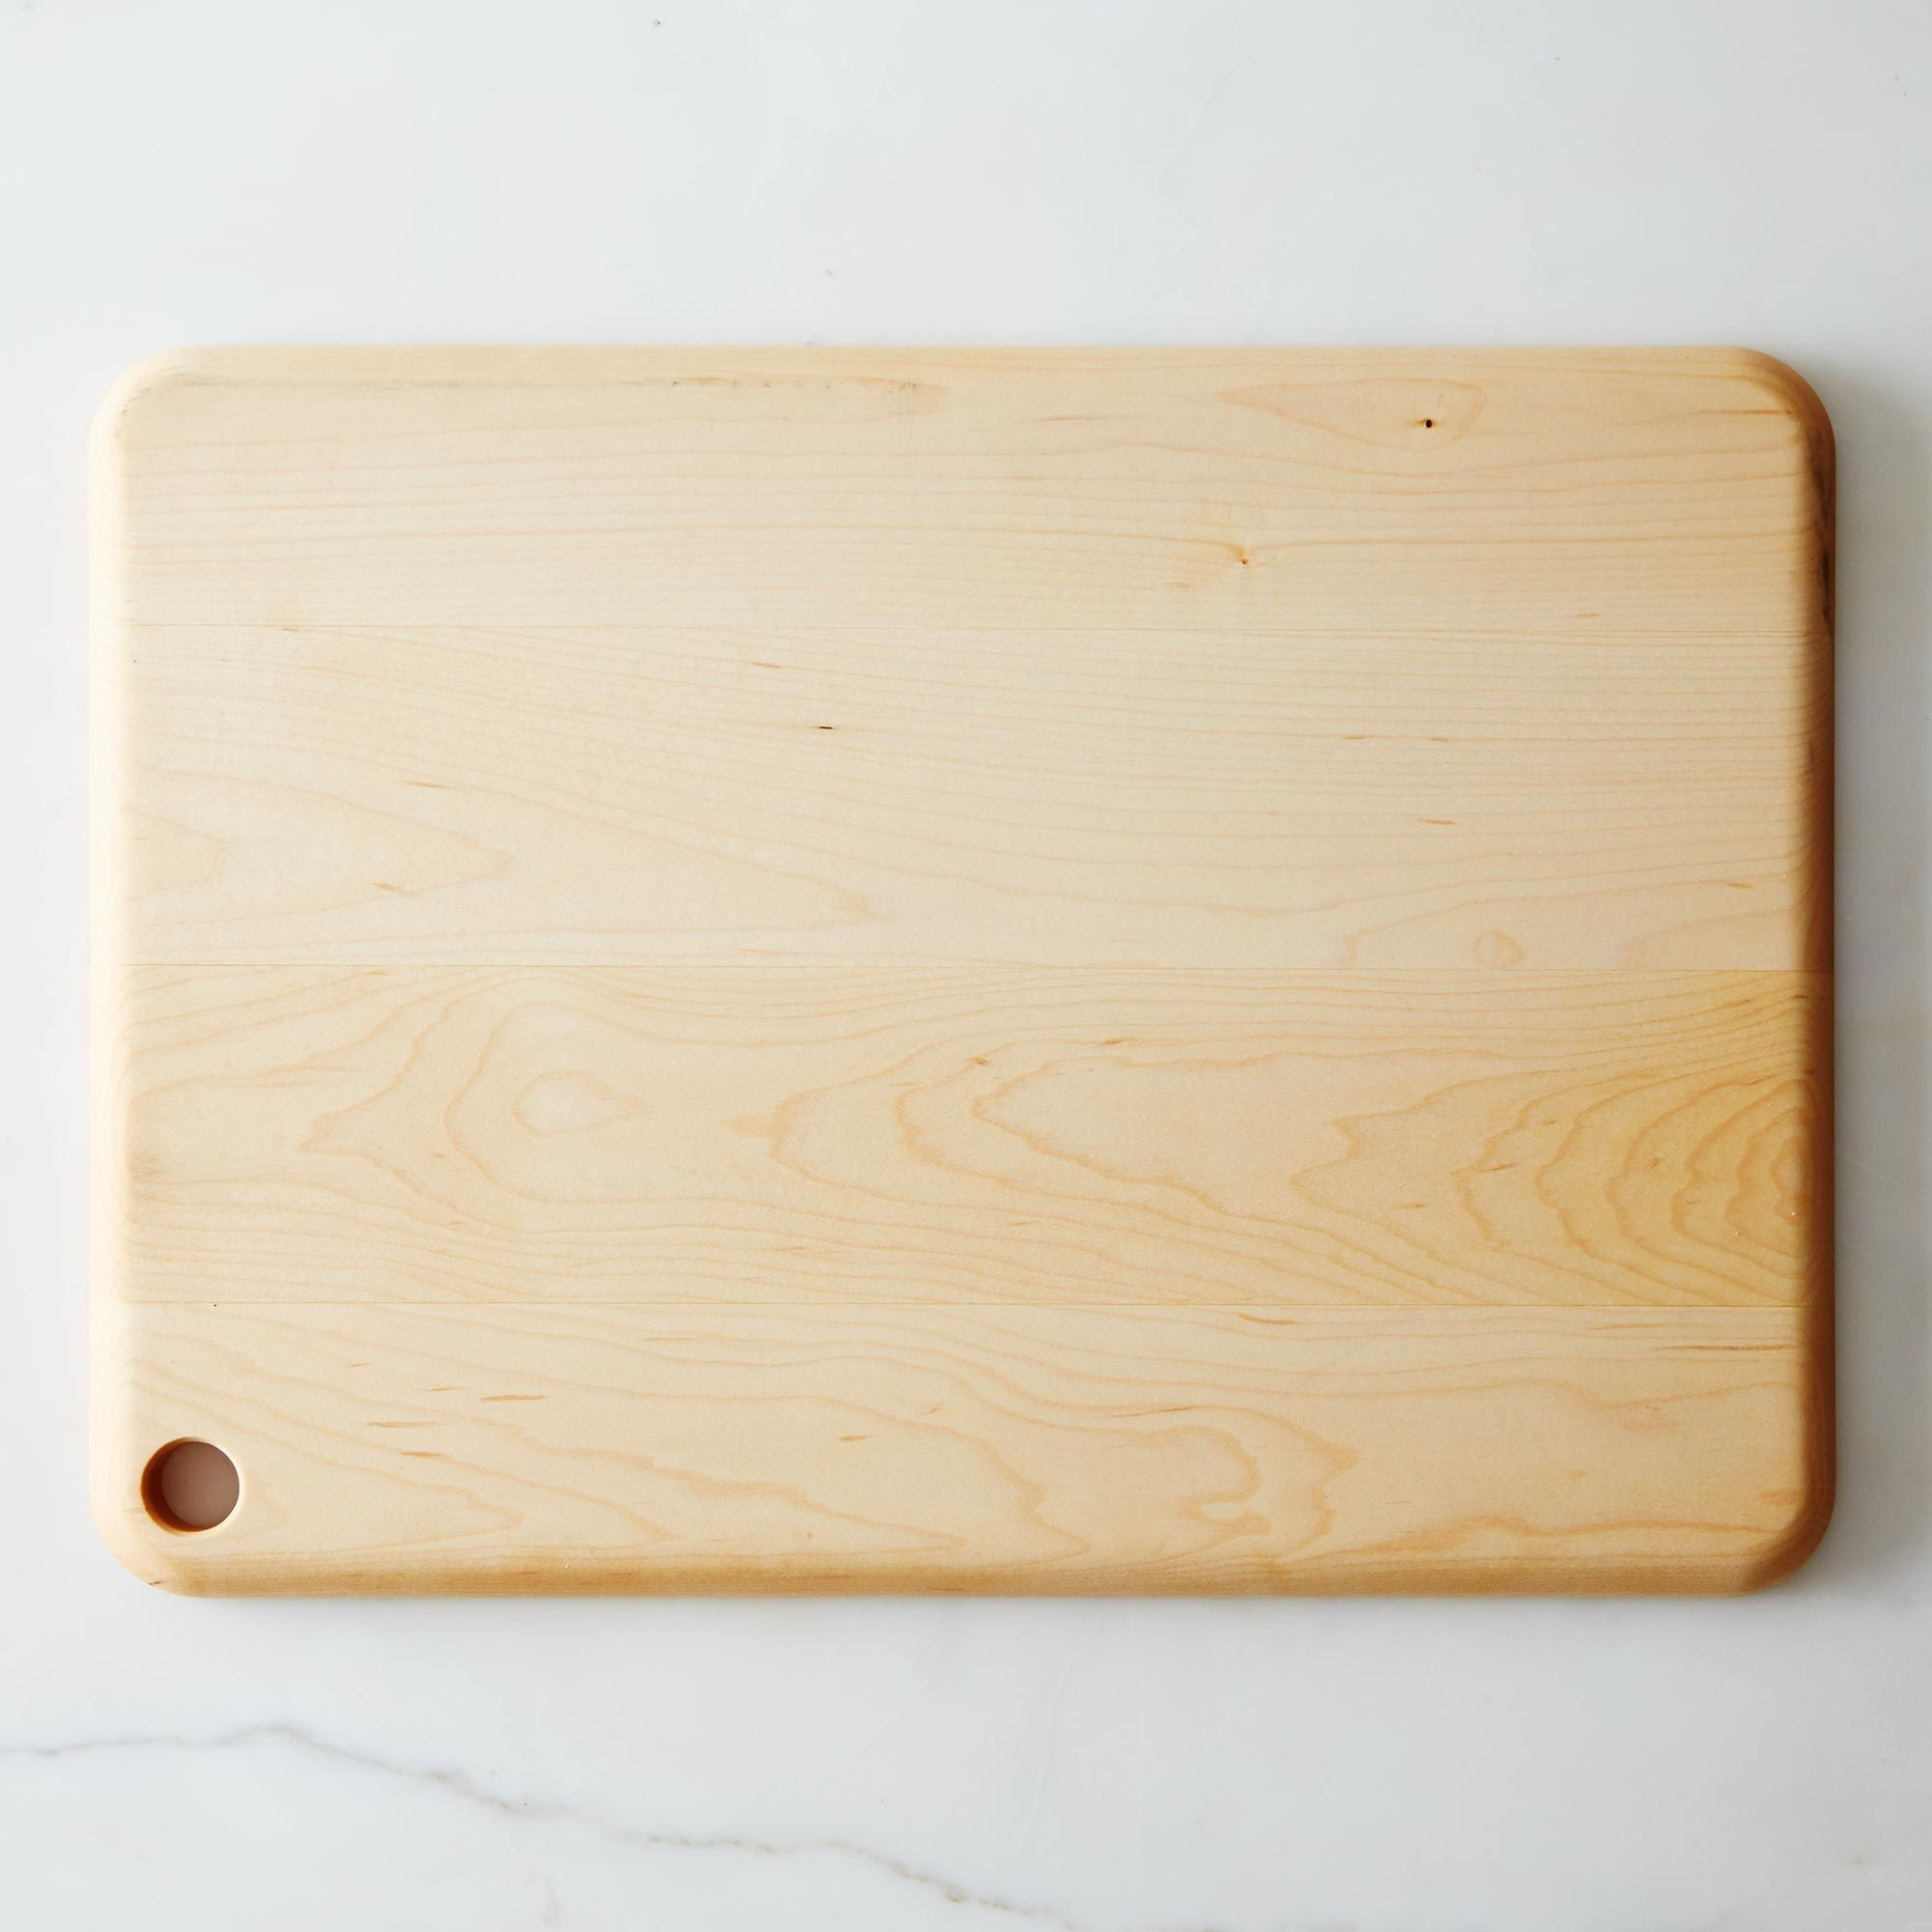 B6f4194e a0f6 11e5 a190 0ef7535729df  2014 0818 magnus design cutting boards silo 019